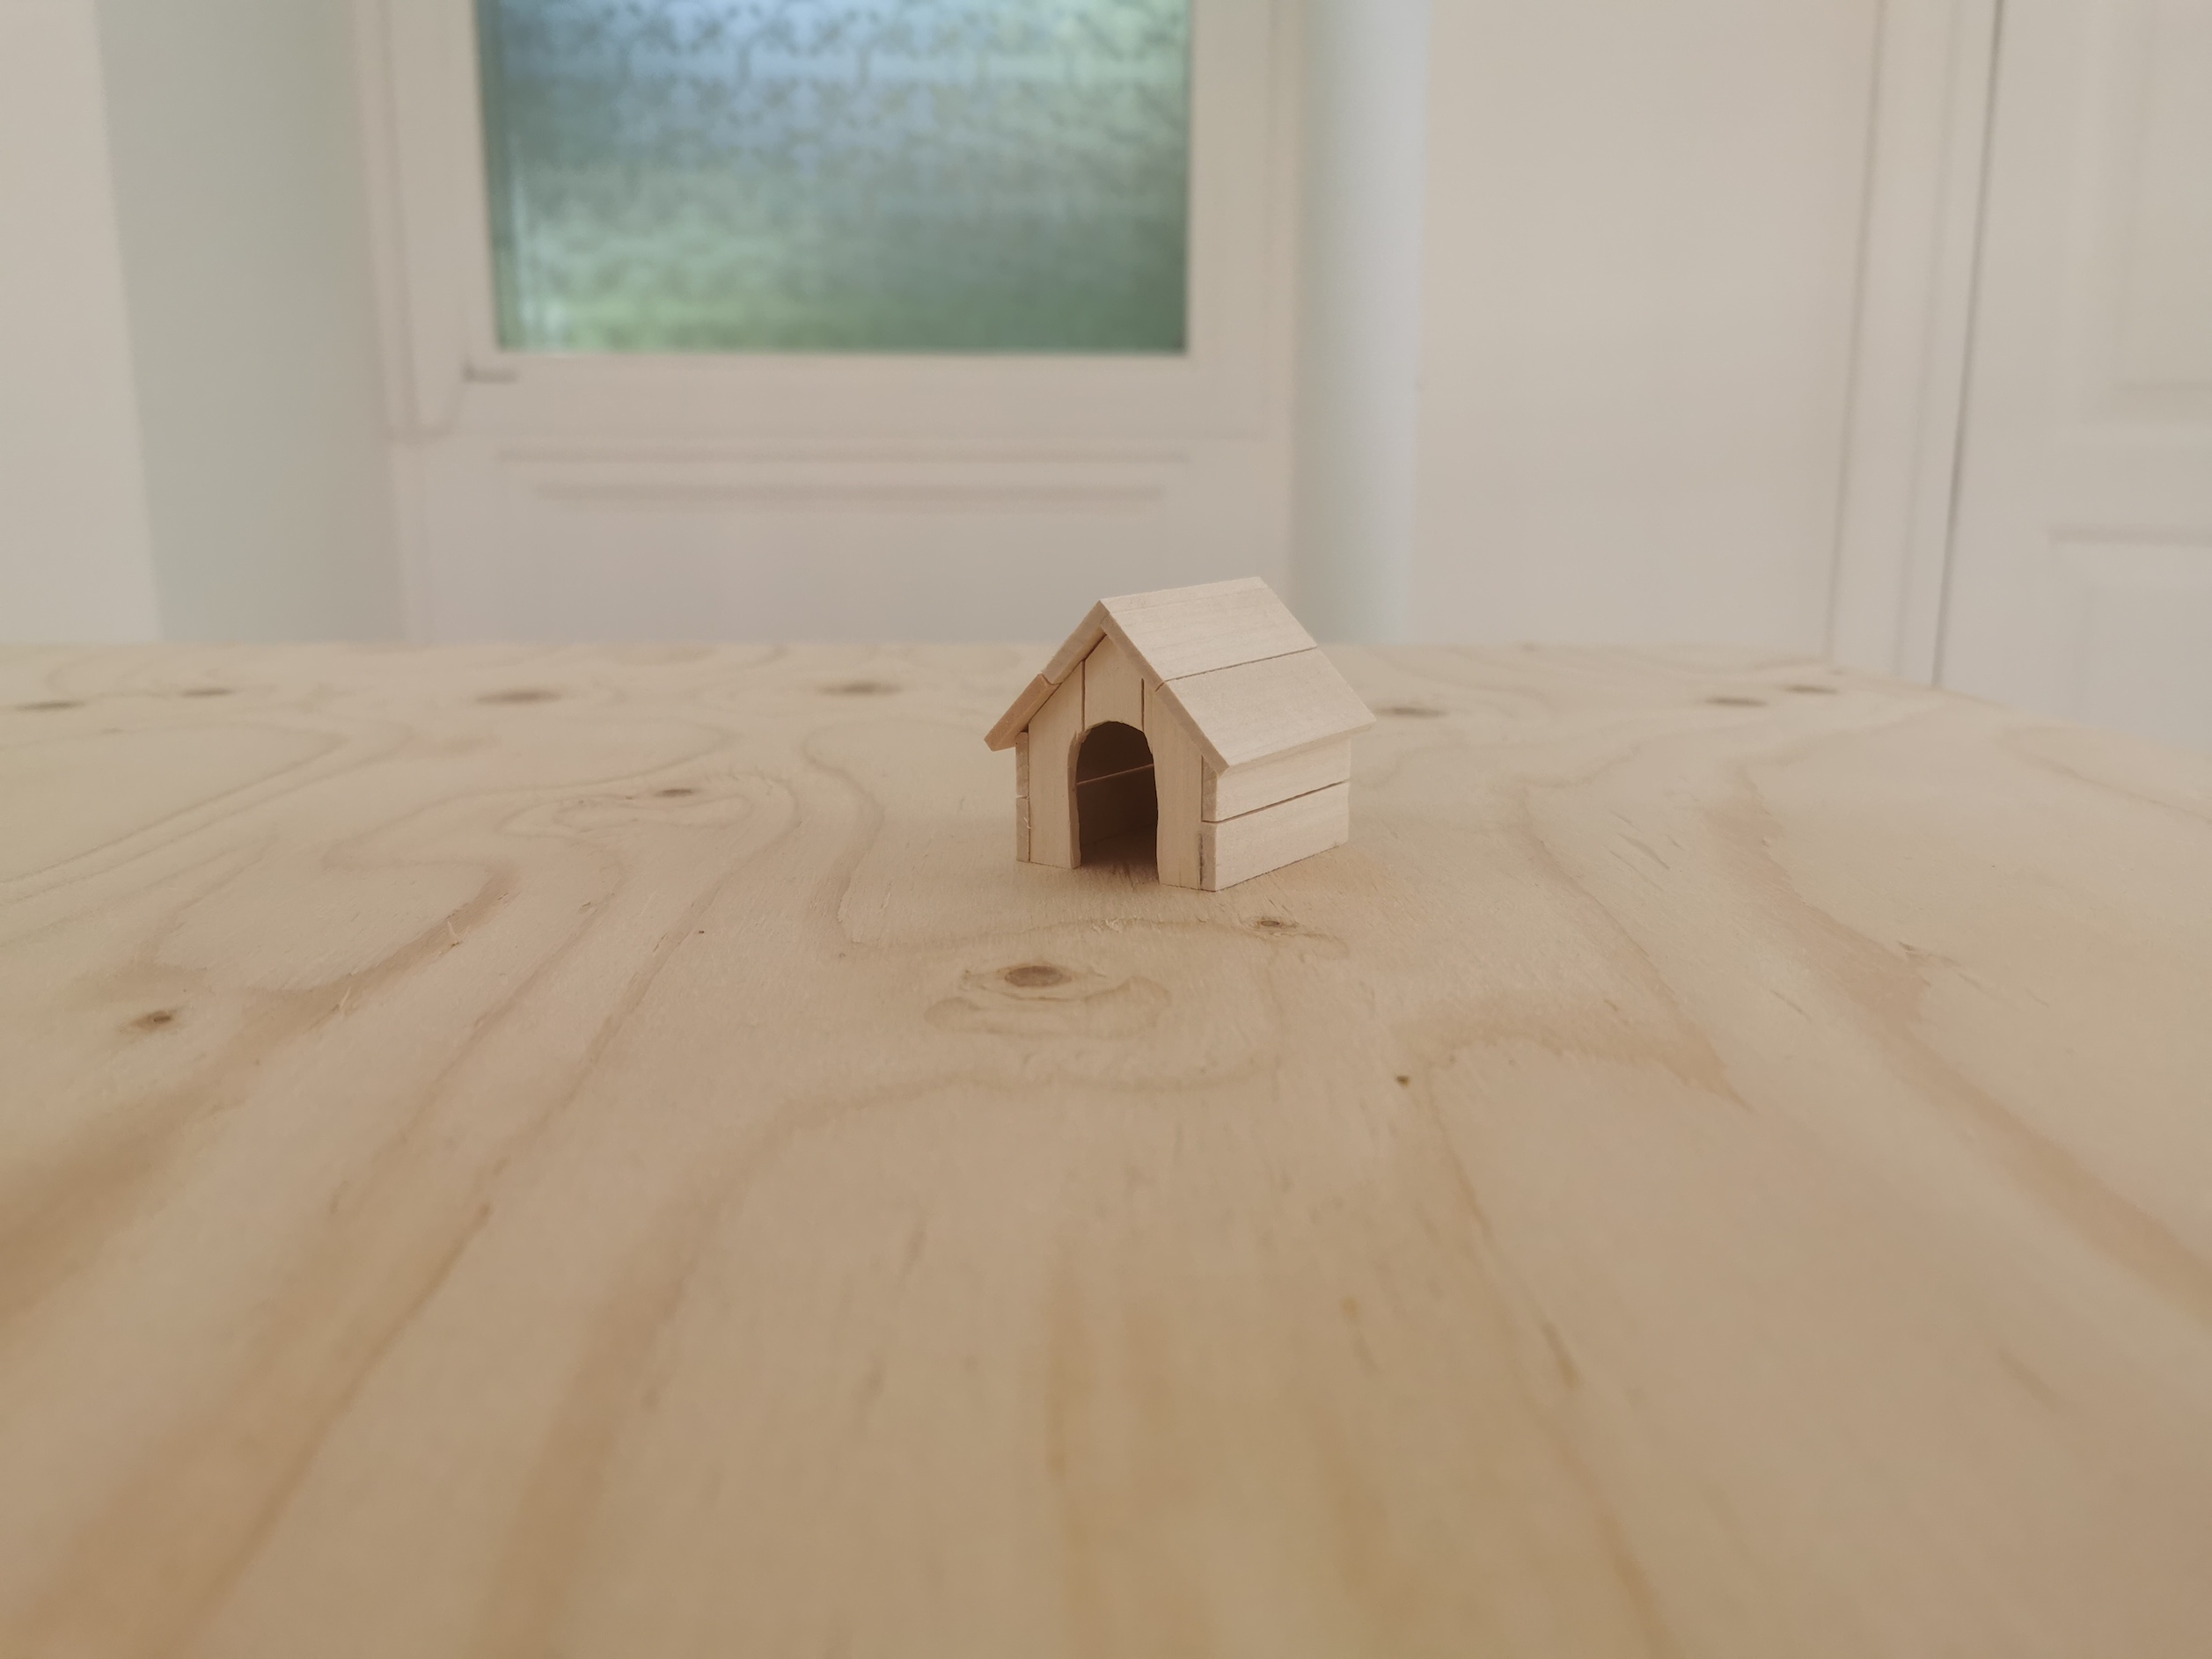 From Venice: Is Architecture Possible According To The United States?  It is only made of wood